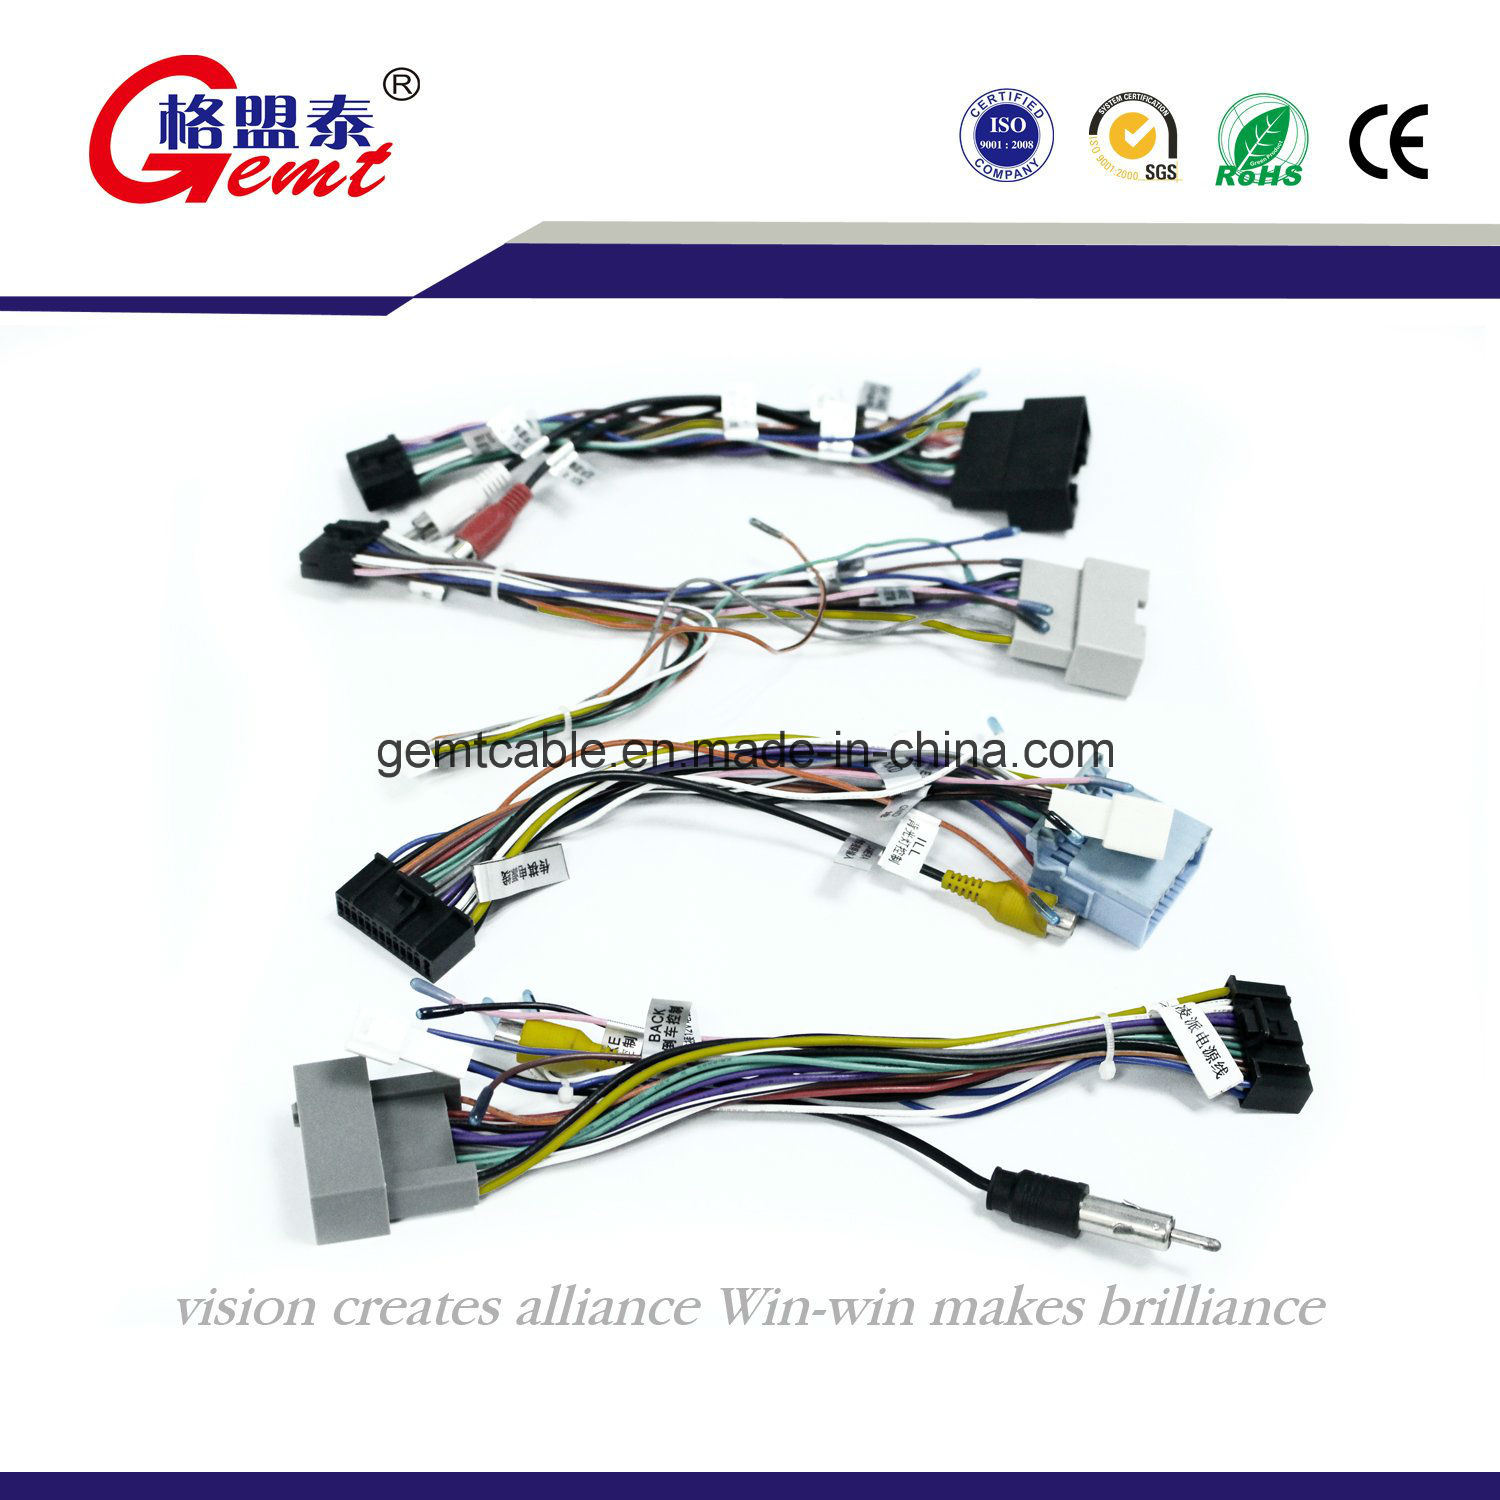 hight resolution of china wiring harness manufacturer produces custom cable assembly china wire harness wiring harness